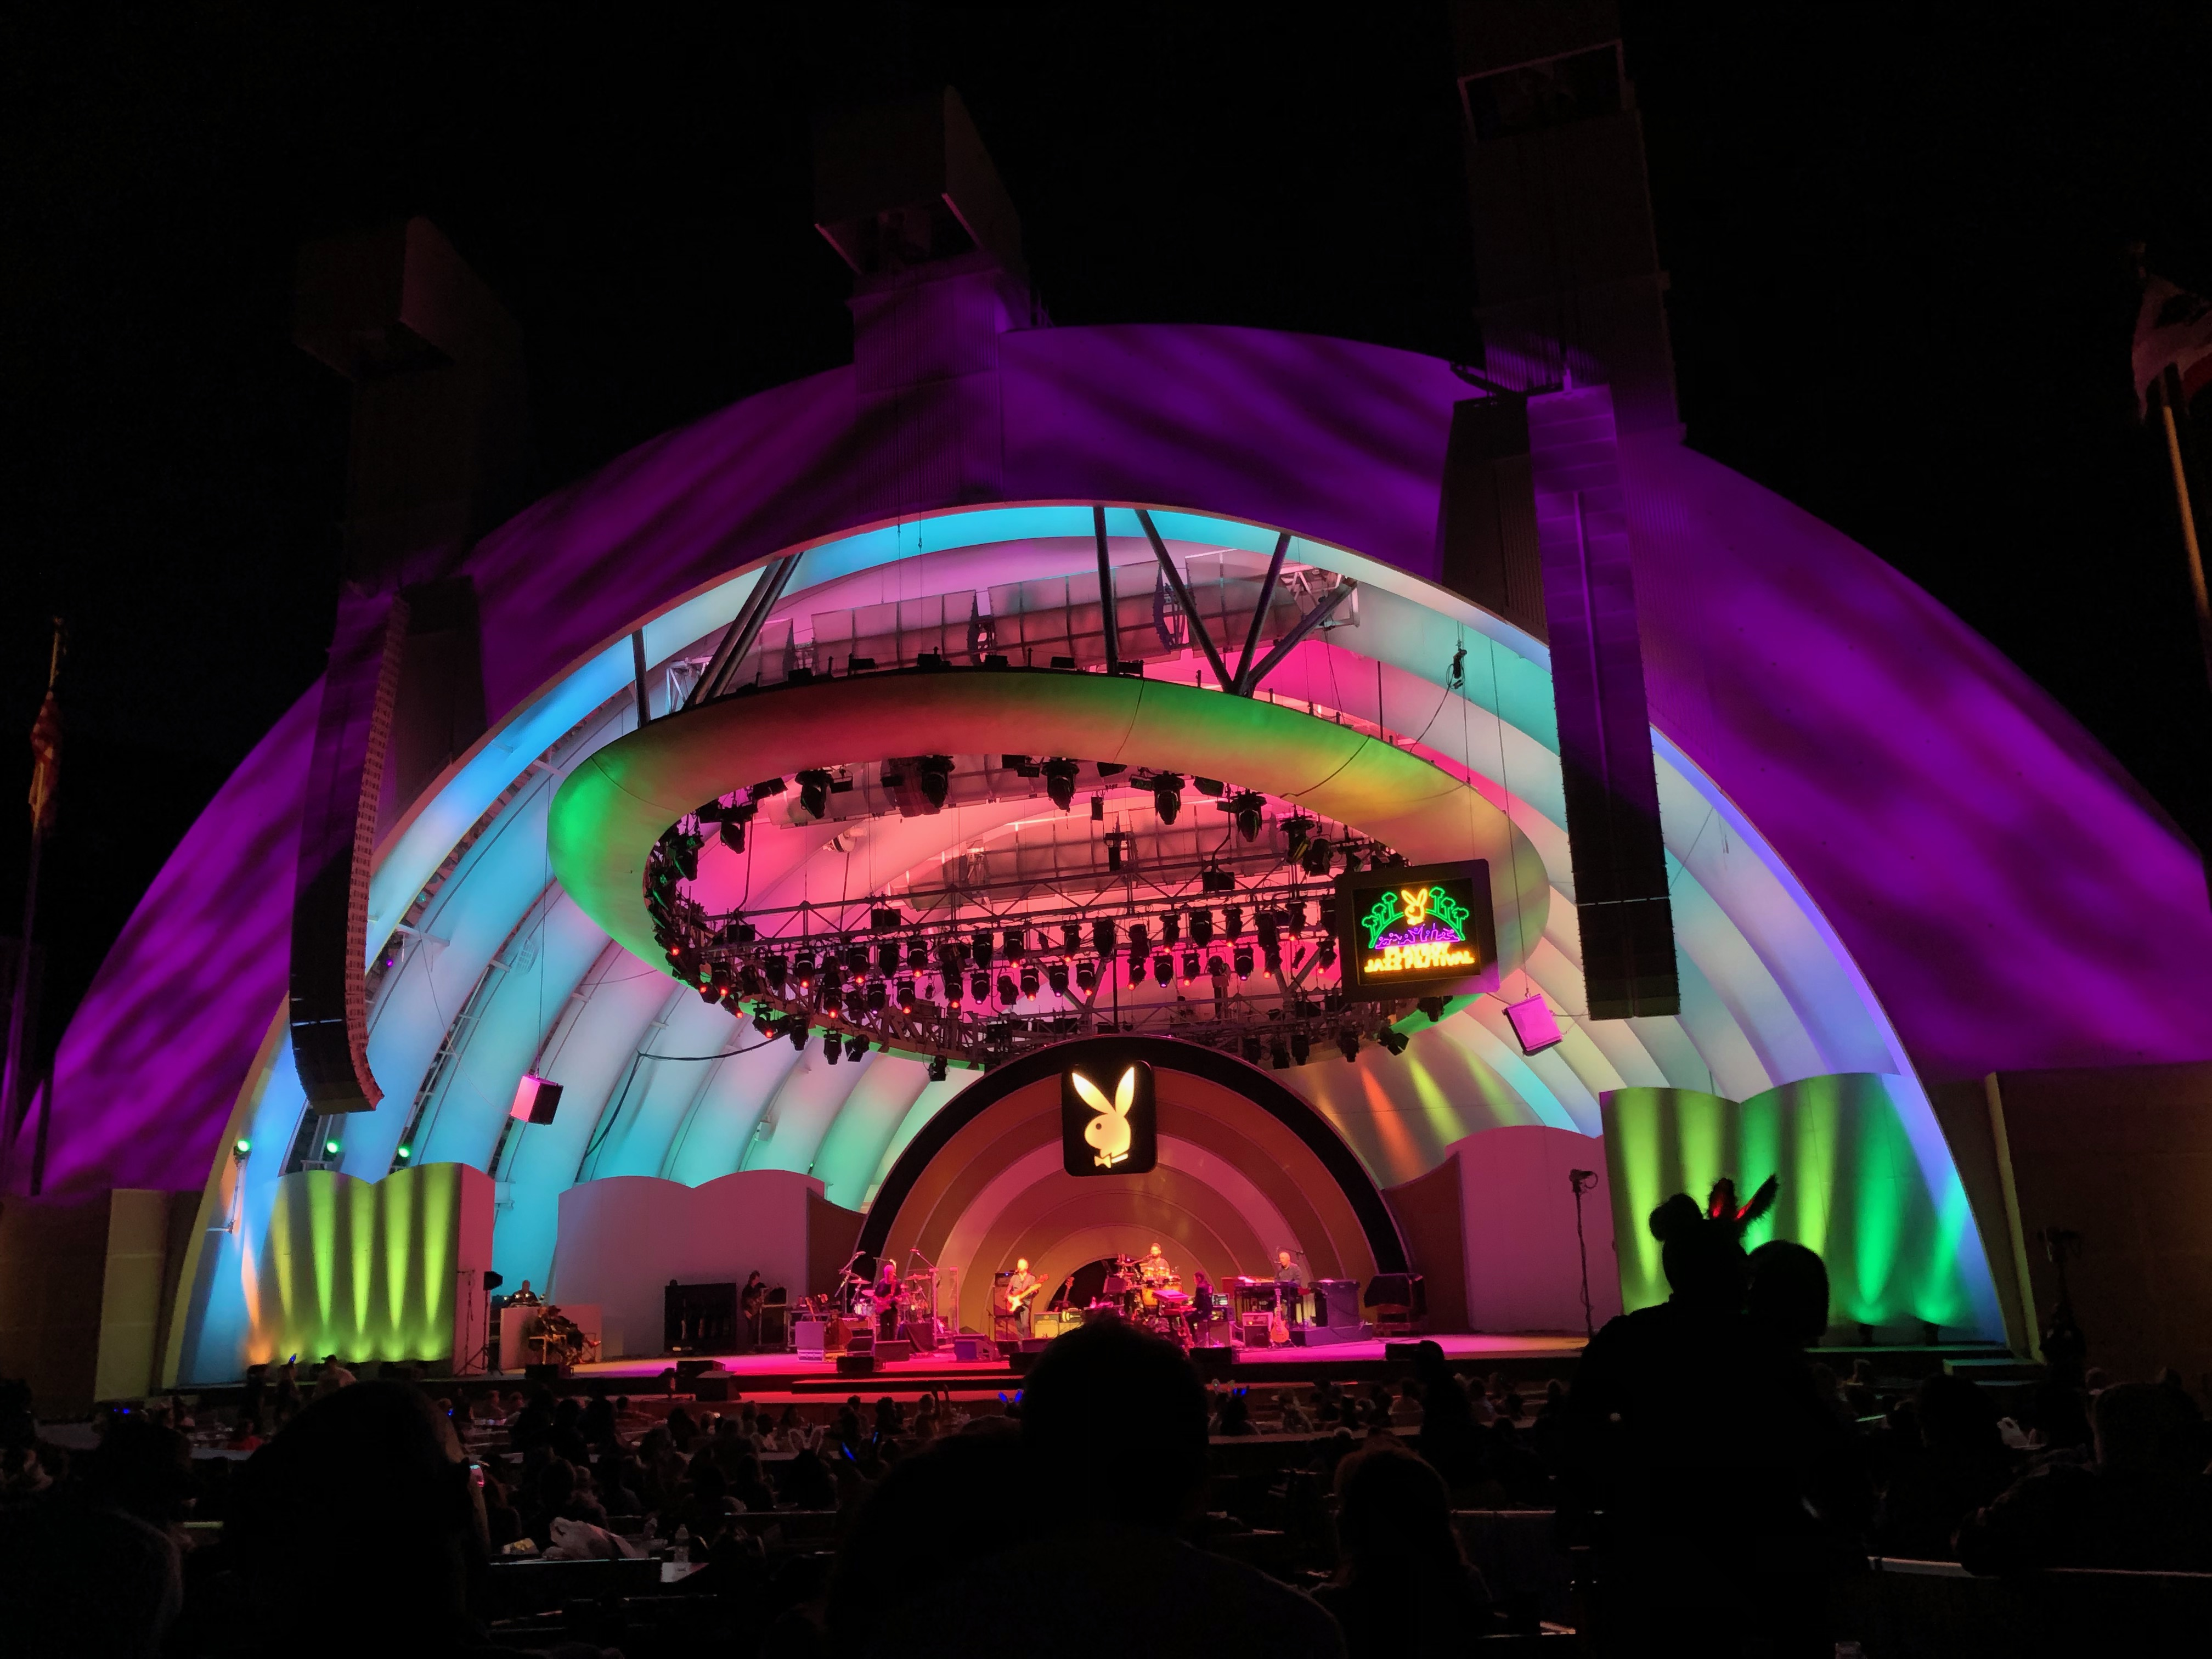 Hollywood Bowl on June 9, 2019 during the Playboy Jazz Festival | Karen Foshay